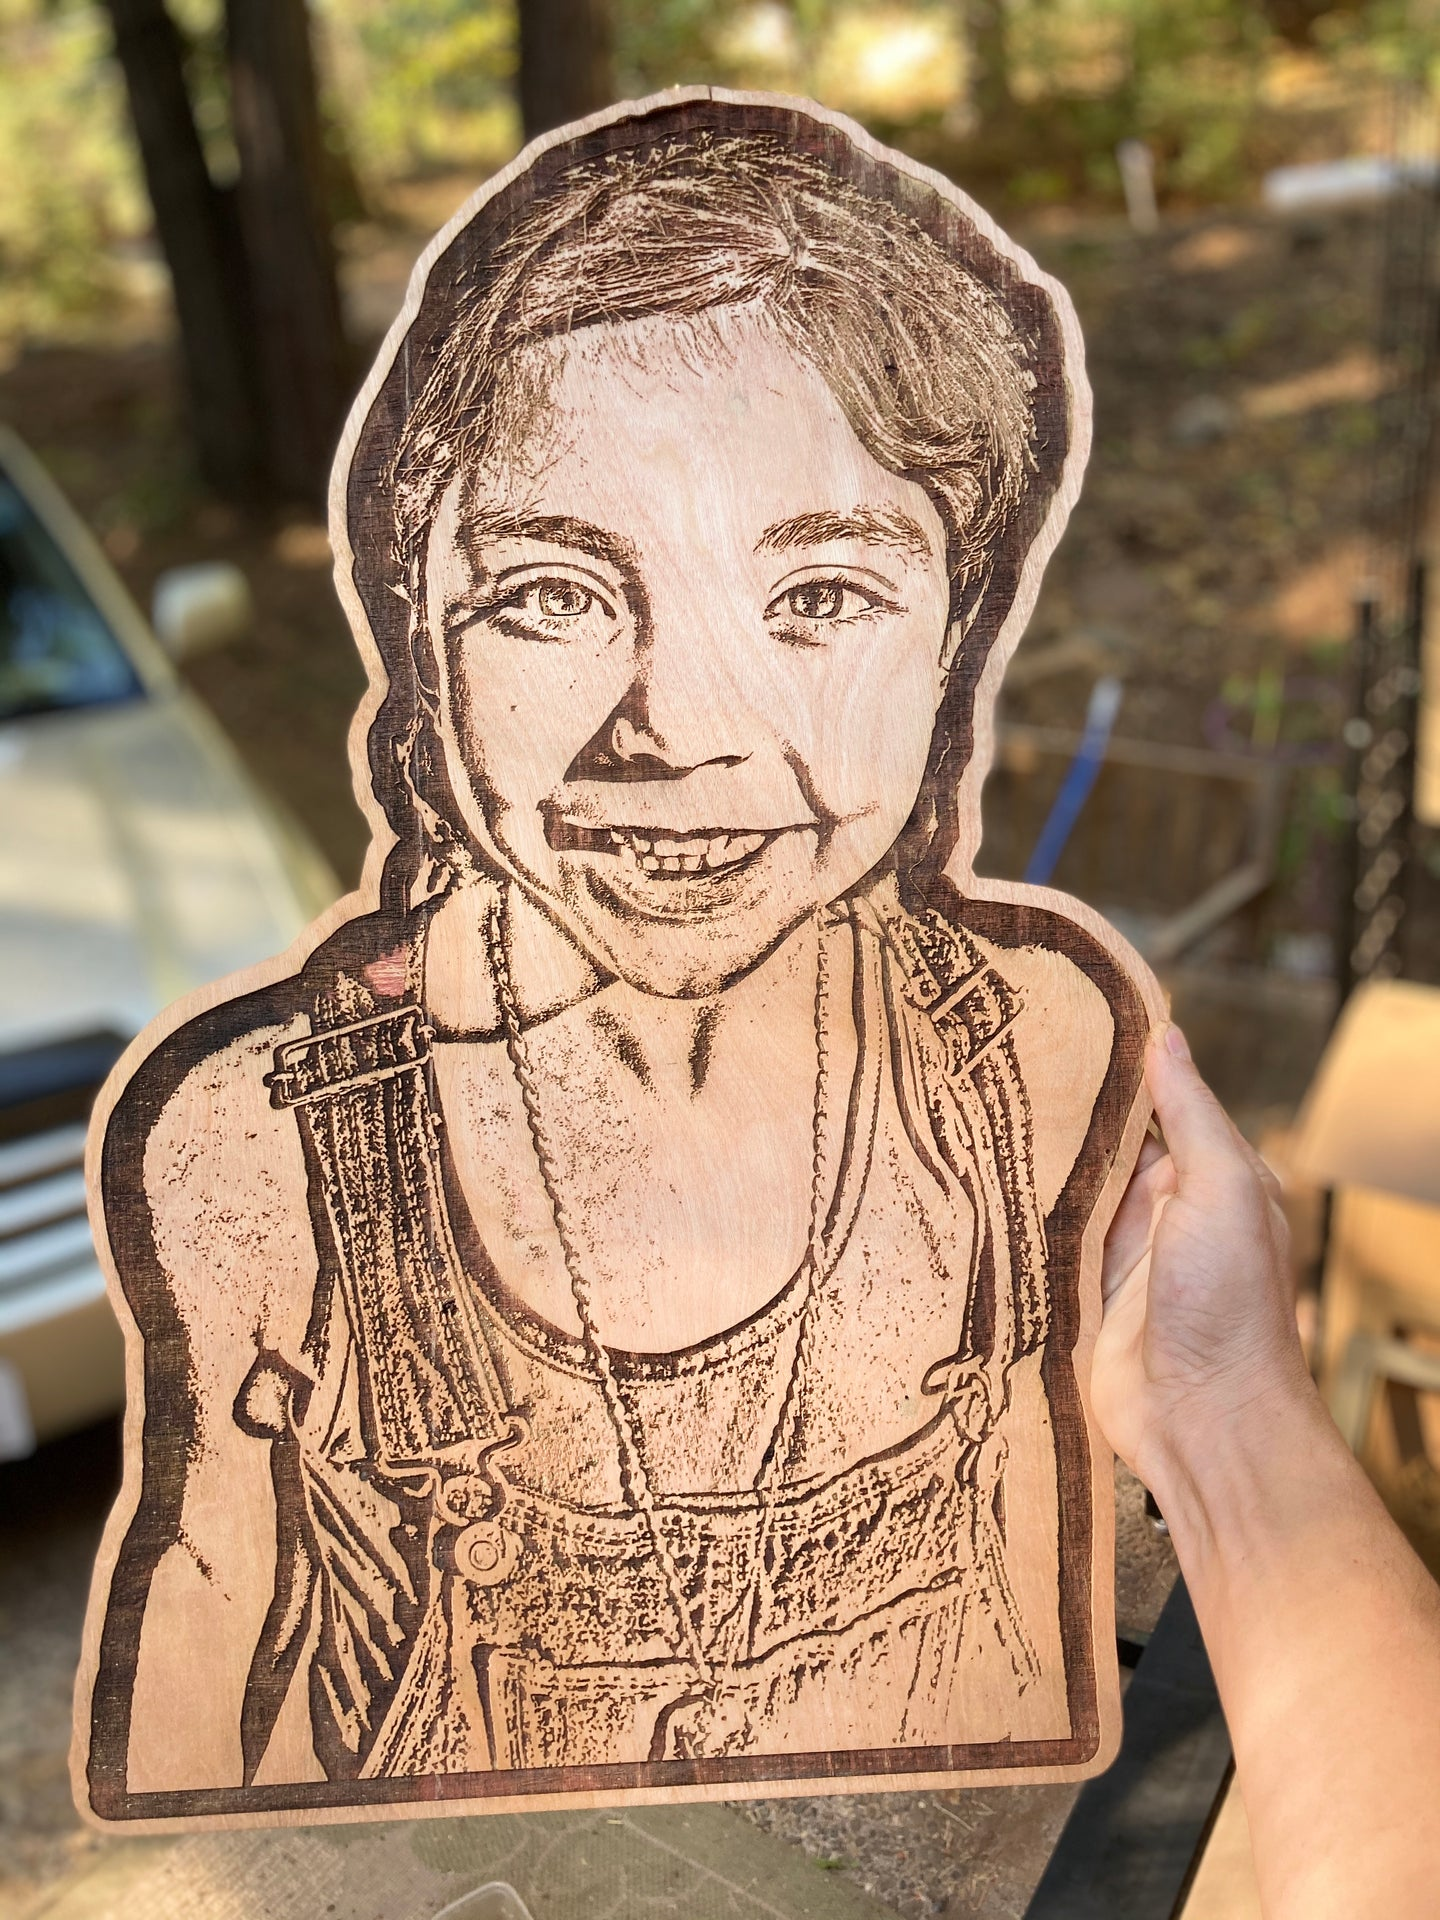 Laser Engraved Photo 5 x 7""